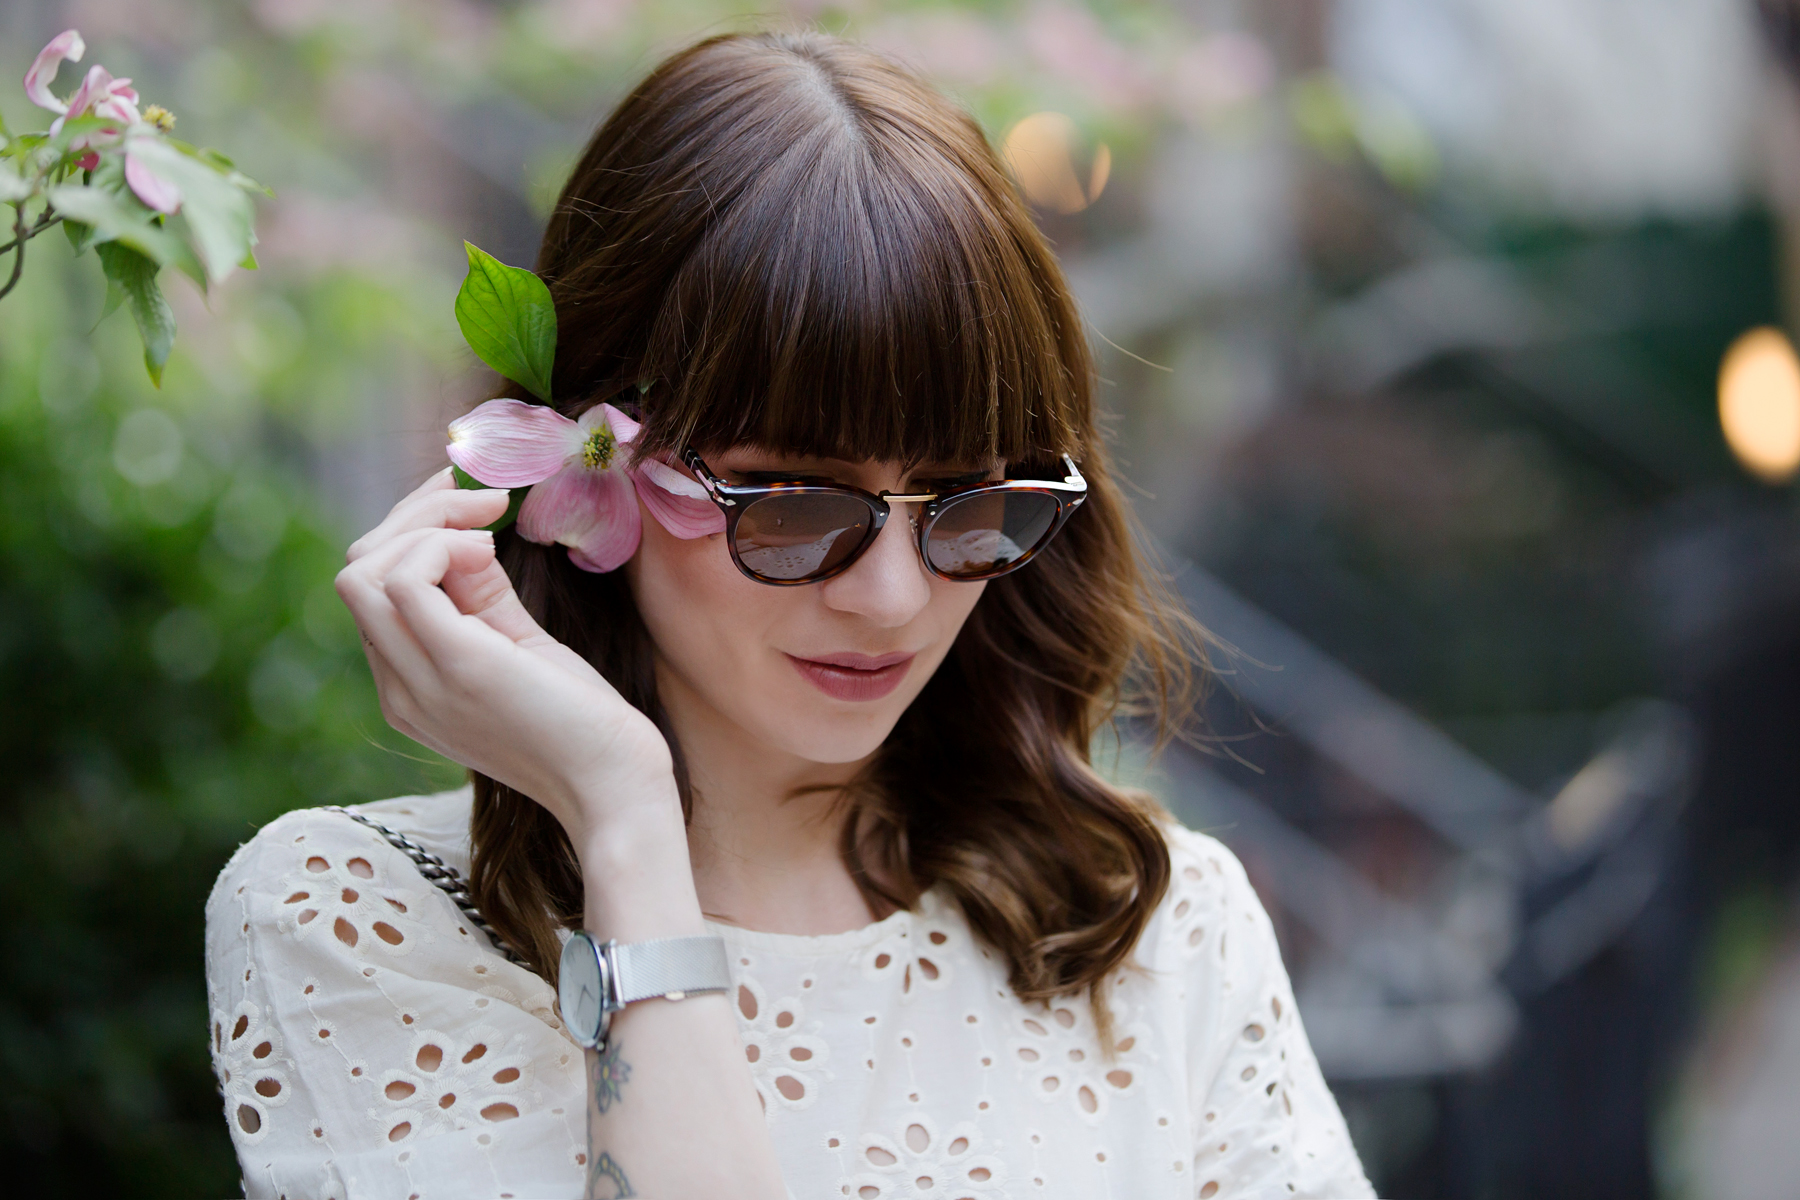 new york city streetstyle fashion fashionblogger mint&berry persol mister spex gucci dionysus luxury fashion styling look summer flowers floral cats & dogs modeblog ricarda schernus fashionblogger germany 5